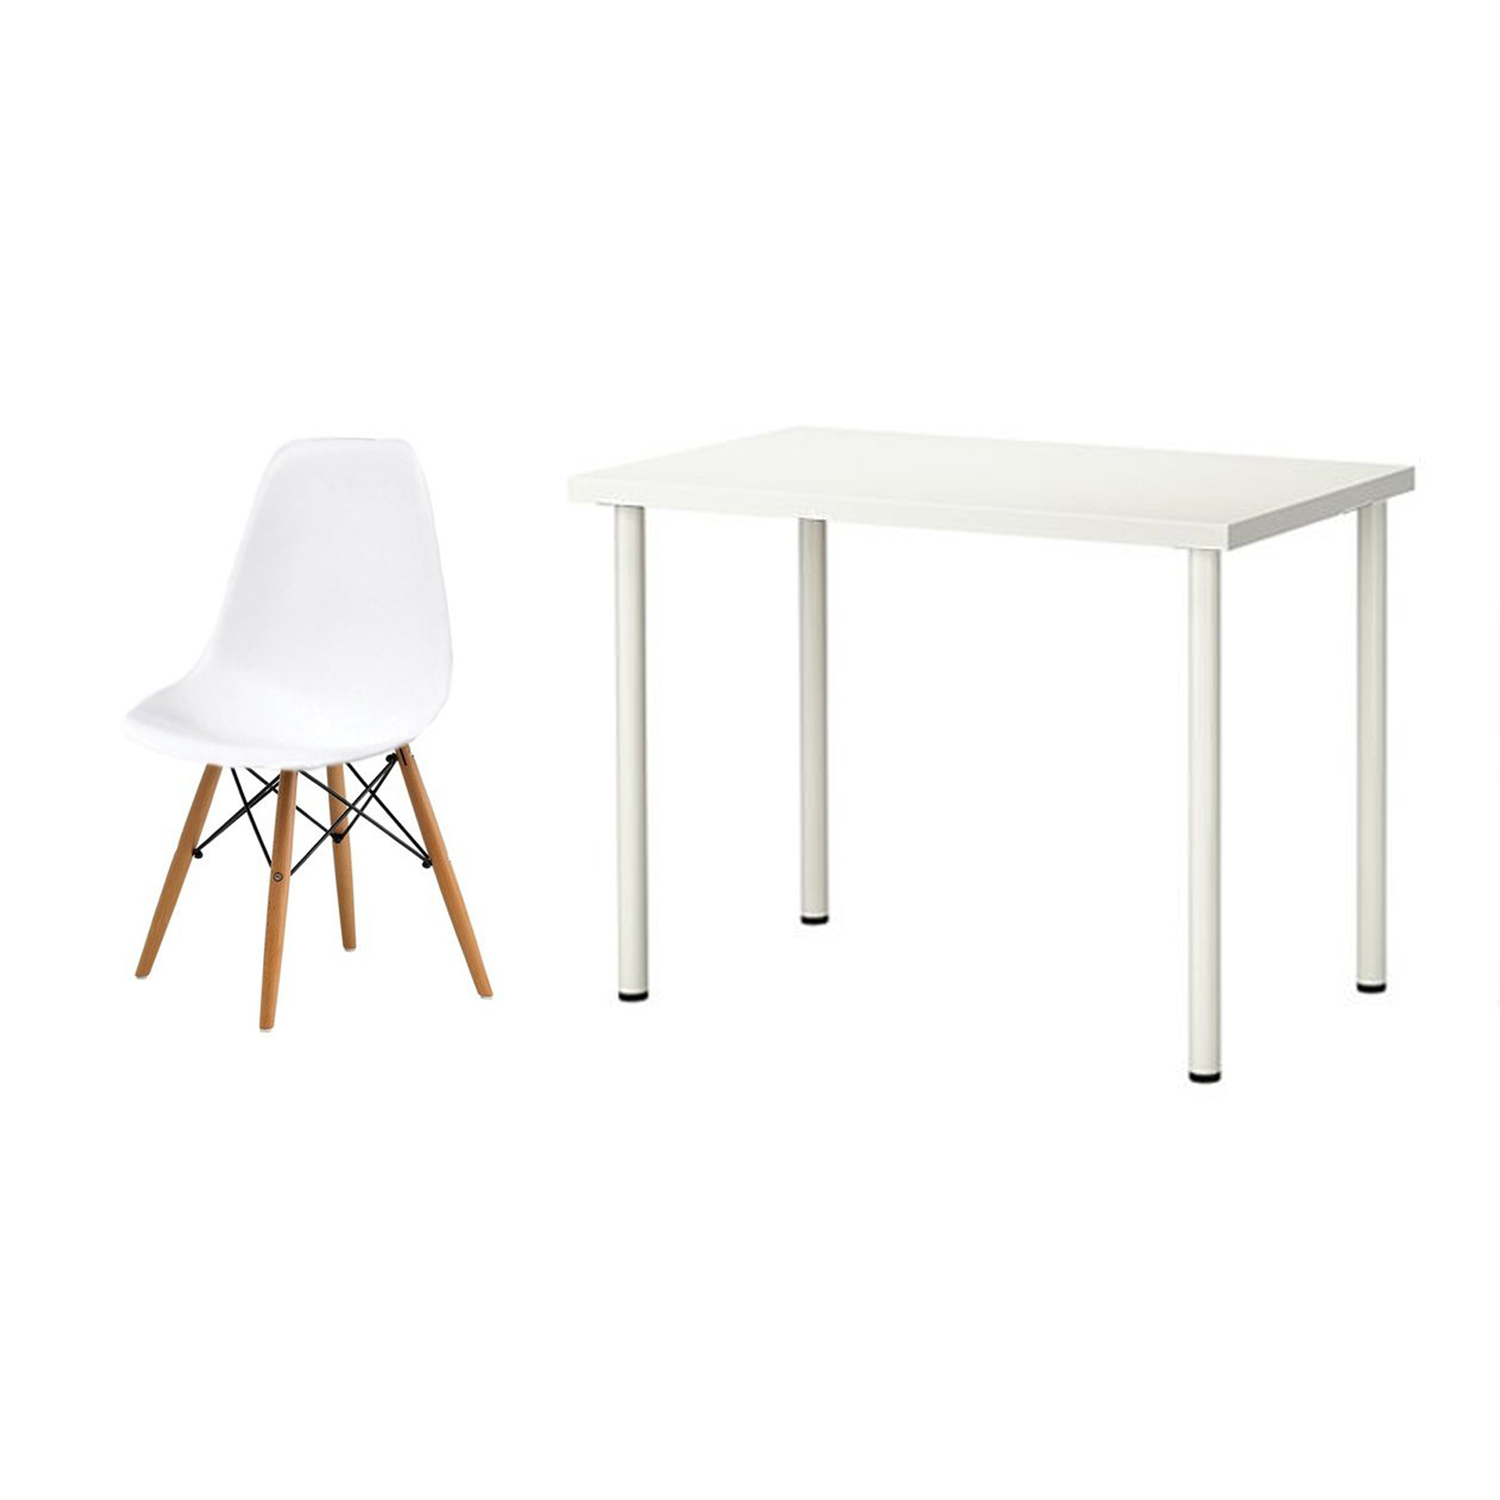 Linnmon Linnmon Adils Desk 100cm With Barnes Doily Chair White